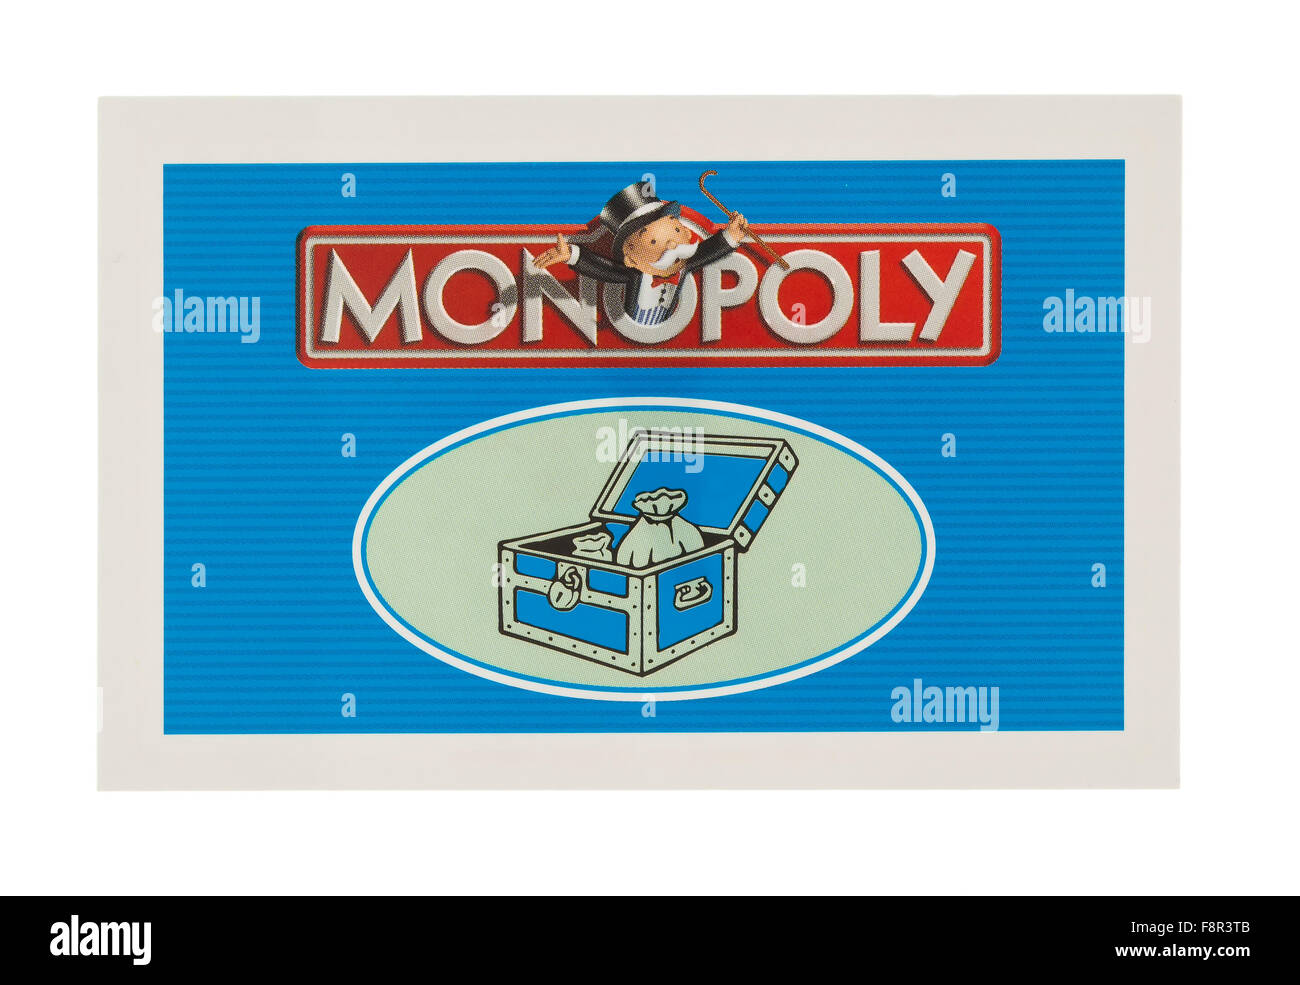 english edition of monopoly showing community chest card the classic trading game from parker bro